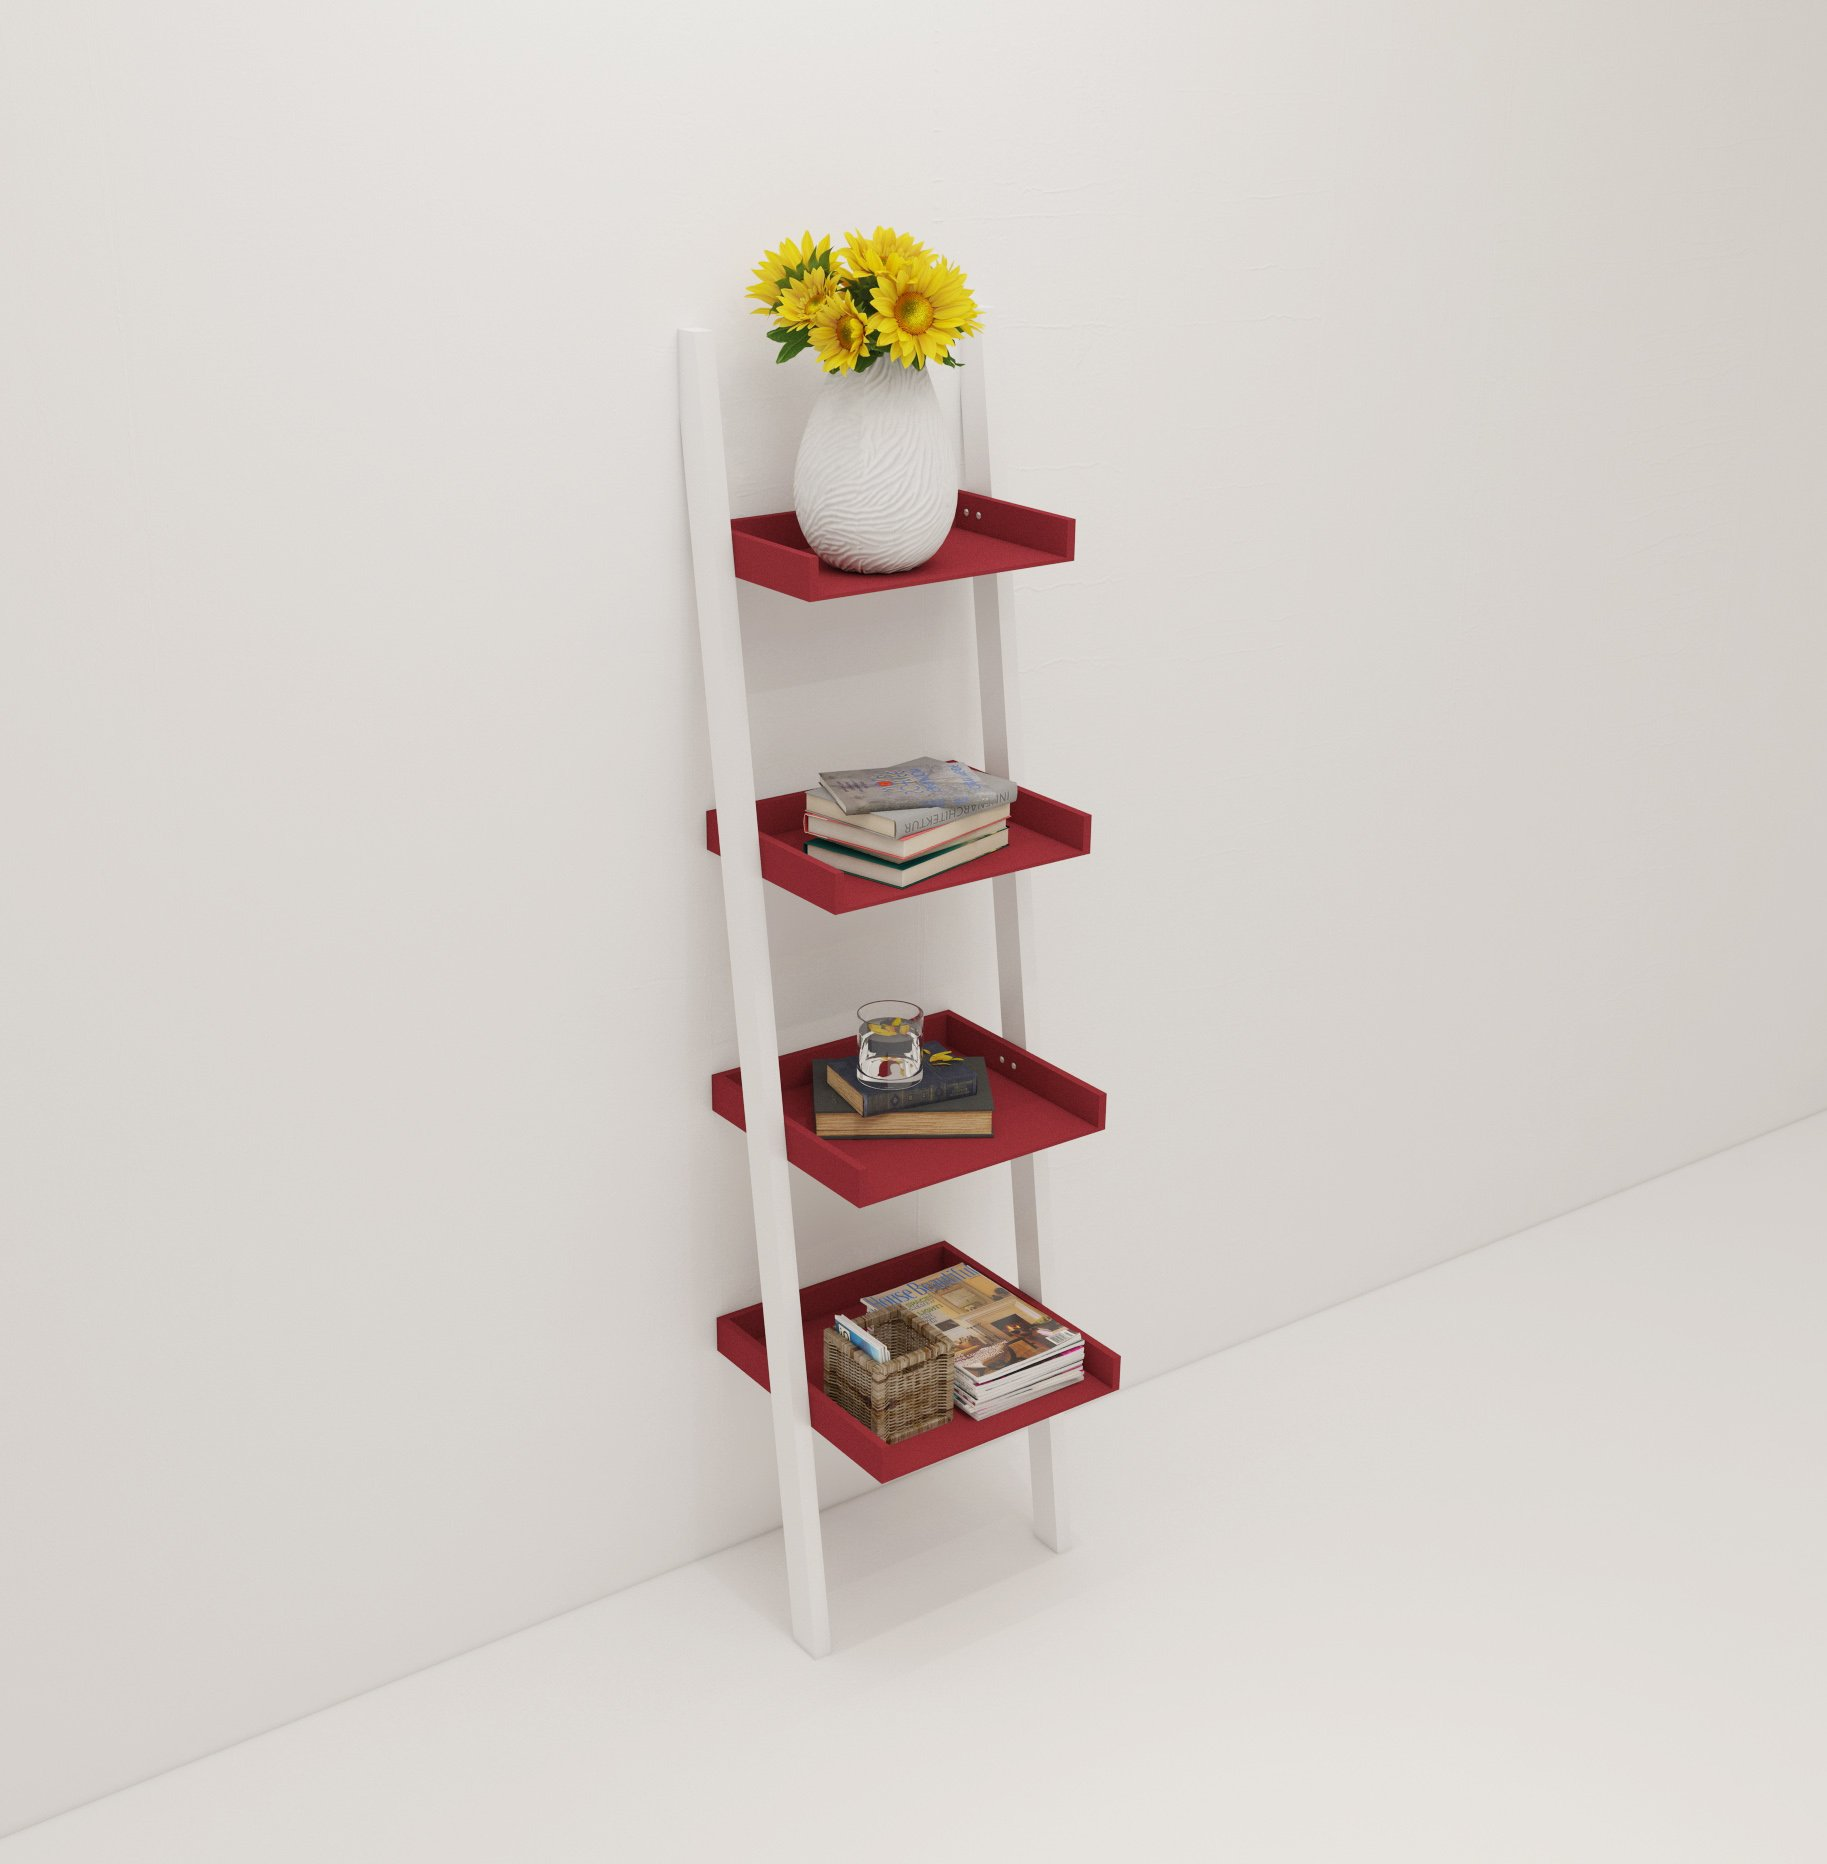 "Amayo Home 4 Tier Bookcase White Ladder Shelf Unit Display Shelves Storage Shelving Leaning Bookshelf in White and Red Cherry Color. Sturdy, Modern & Multi Use for Any Rooms Indoor - MODERN, FUNCTIONAL, STABLE - This beautiful ladder bookshelf will instantly add a modern aesthetic to any space in your home. Featuring a wide base, this shelf is not only functional, but incredibly stable. QUALITY MATERIALS - Made from solid wood, this shelf is scratch resistant, stain resistant and built to last. Holds up to 11lbs on each tier. 4 STURDY SHELVES - 4 large, tiered shelves are the perfect place for books, plants, home decor, clothes or toys. Each shelf holds up to 11lbs & has a depth from 8.5"" to 14.4"". - living-room-furniture, living-room, bookcases-bookshelves - 71on4wNGrJL -"